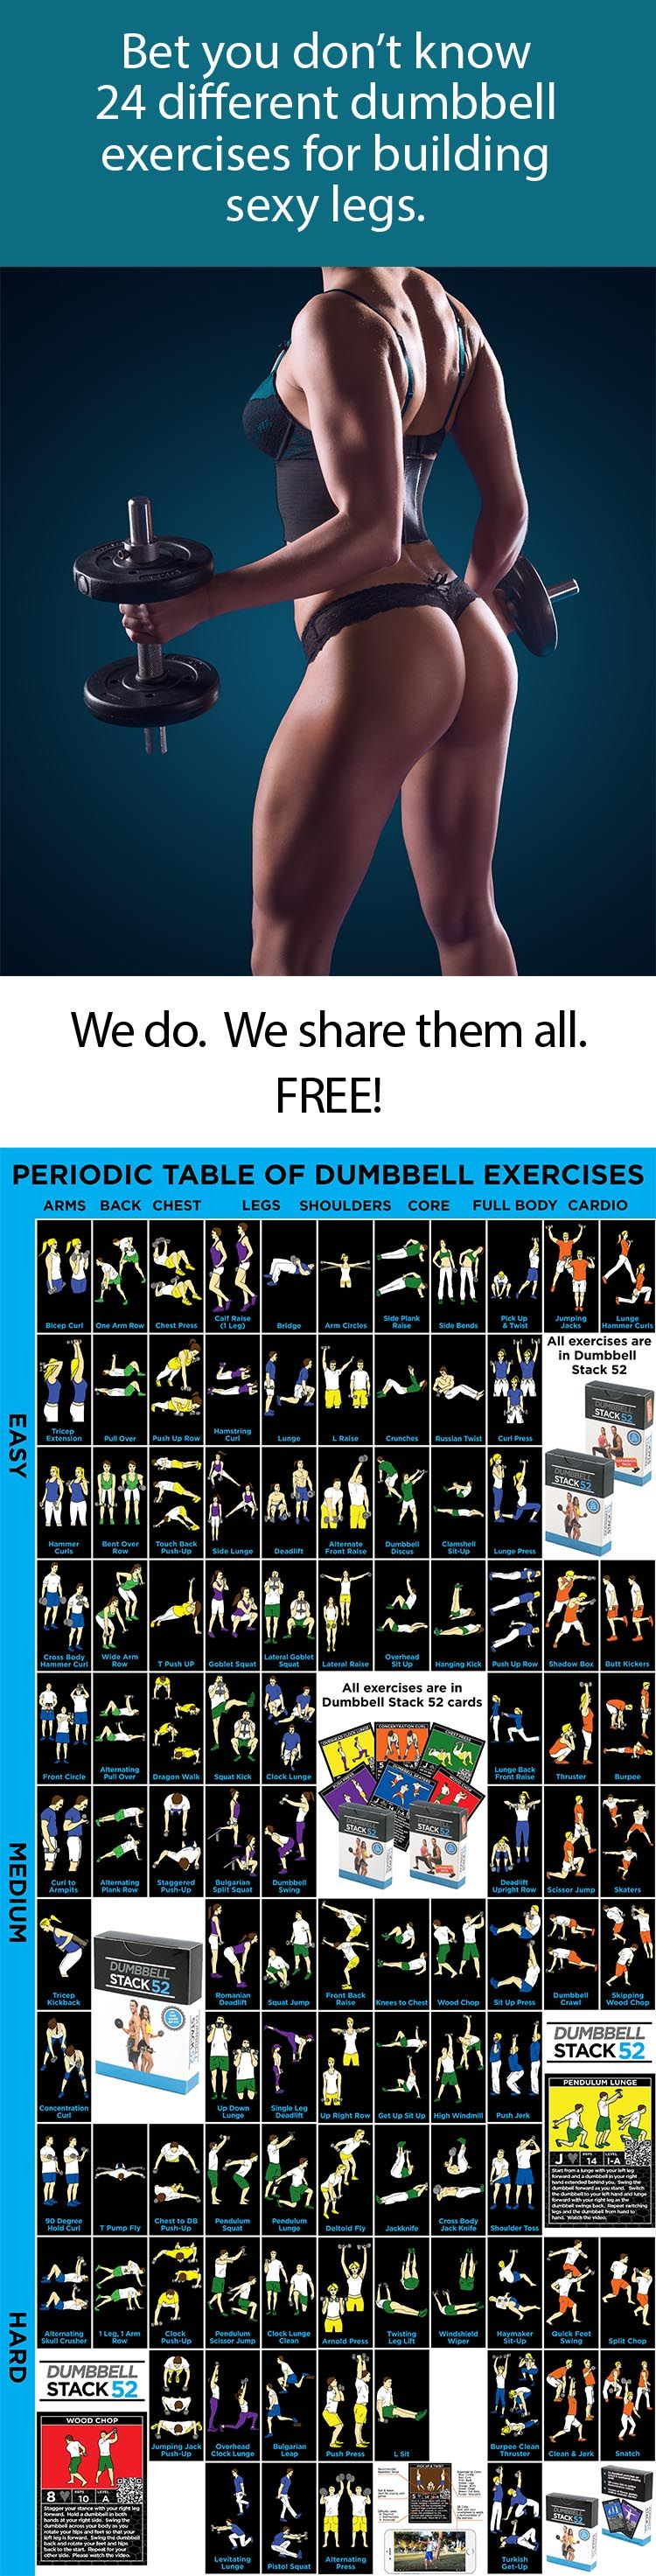 Periodic Table of Dumbbell Exercises #dumbbellexercises